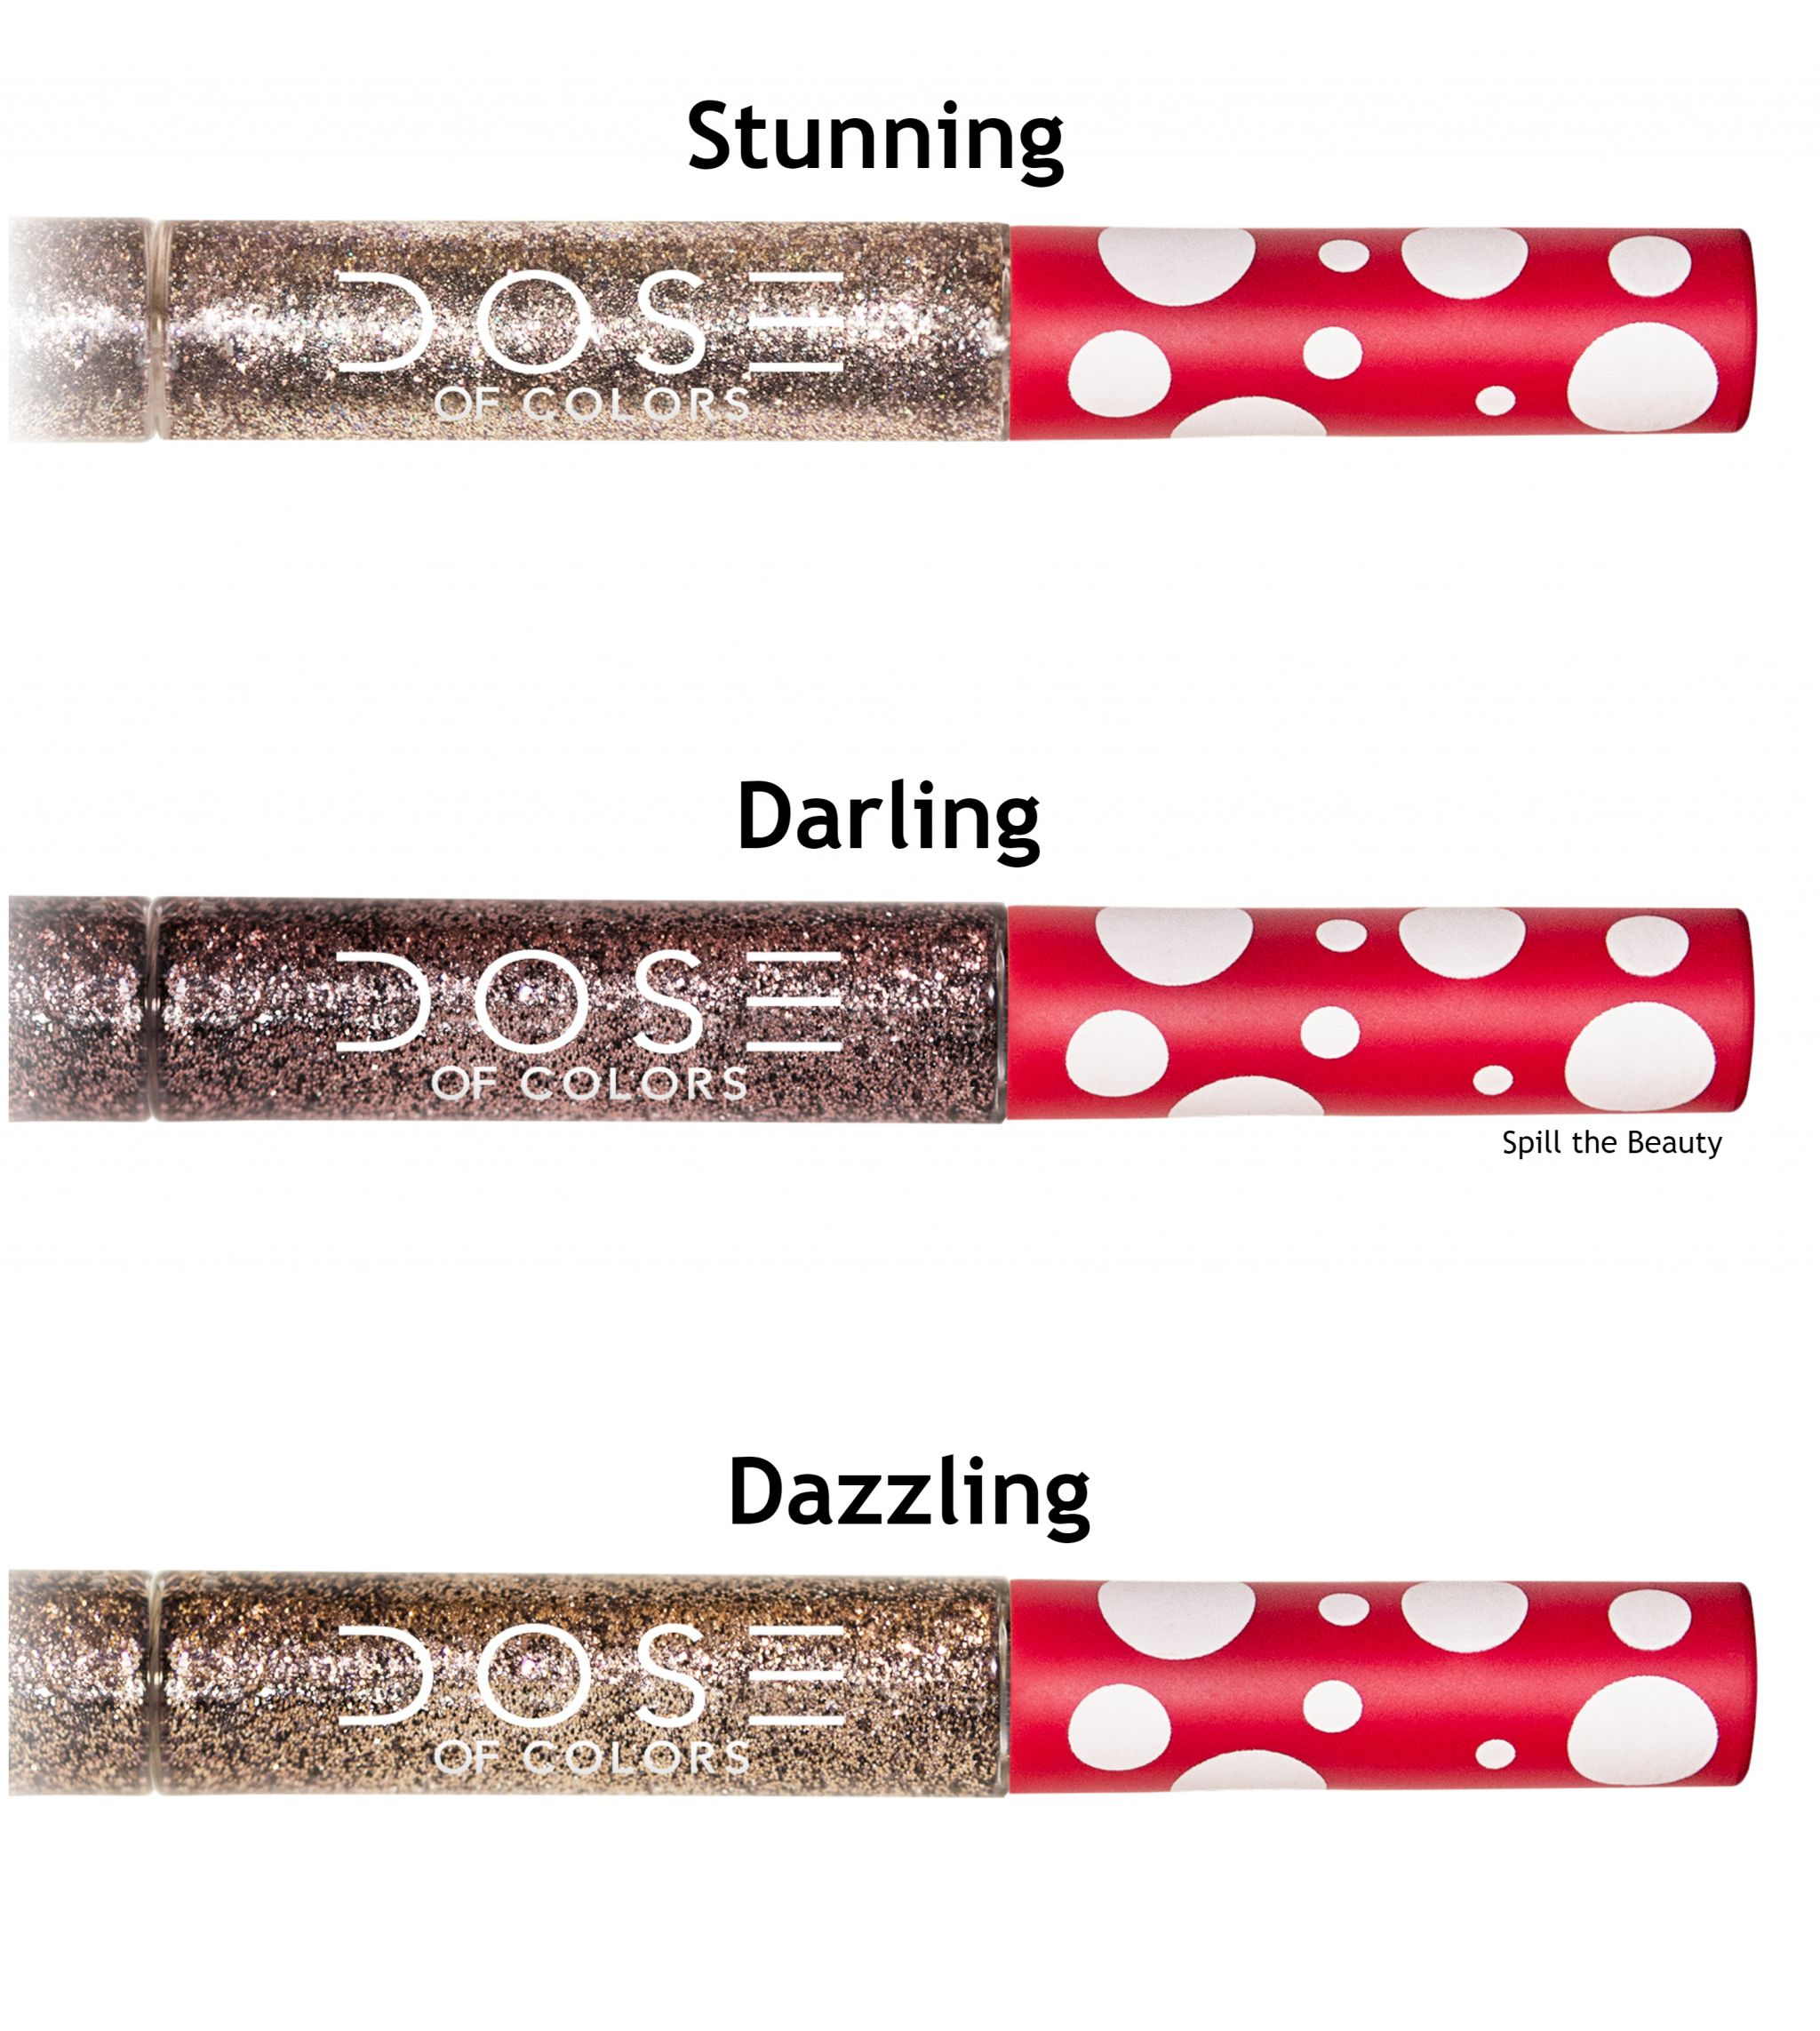 Disney's Minnie Mouse and Dose of Colors Launch New Collection -